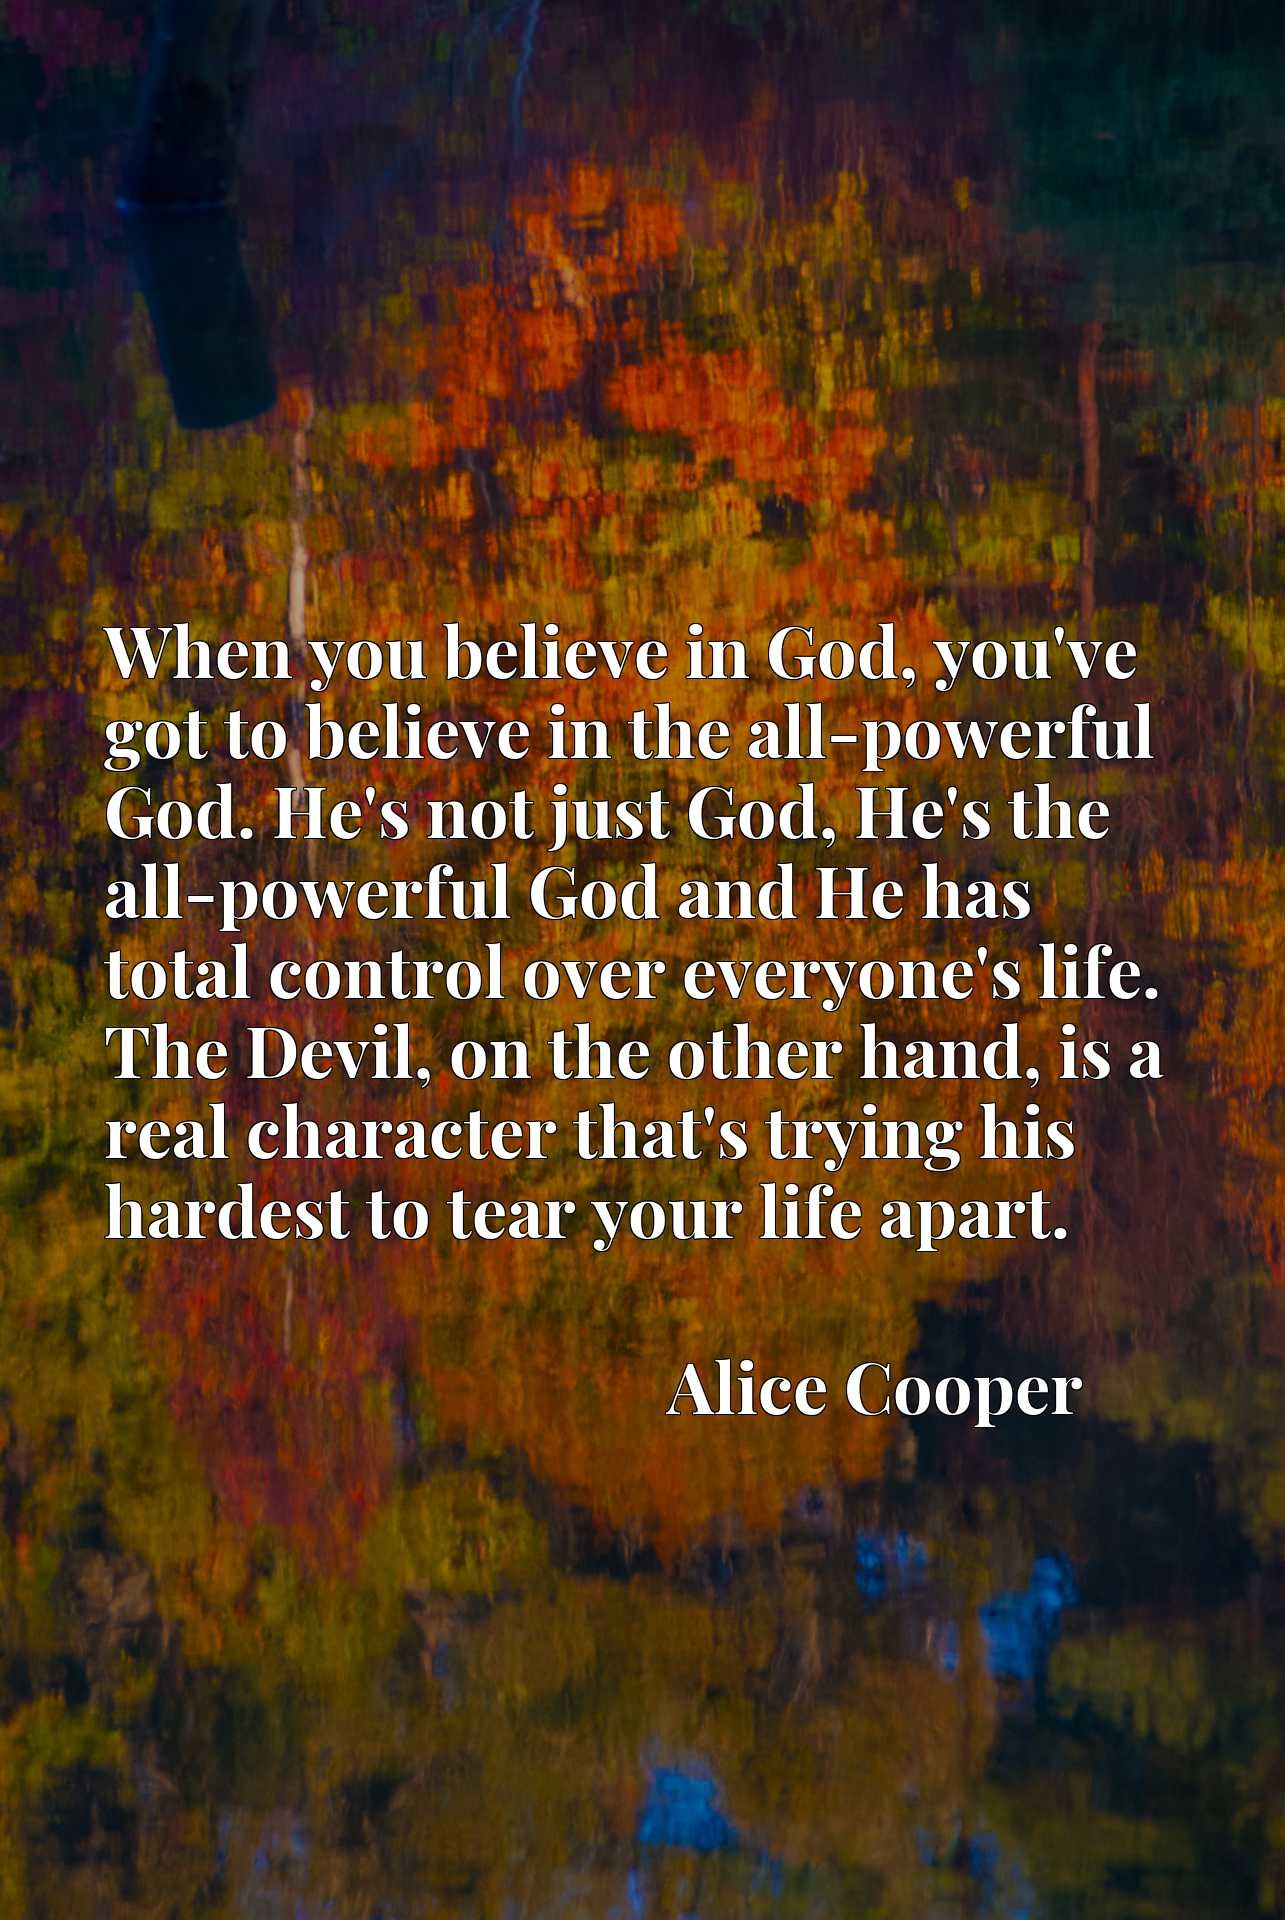 When you believe in God, you've got to believe in the all-powerful God. He's not just God, He's the all-powerful God and He has total control over everyone's life. The Devil, on the other hand, is a real character that's trying his hardest to tear your life apart.